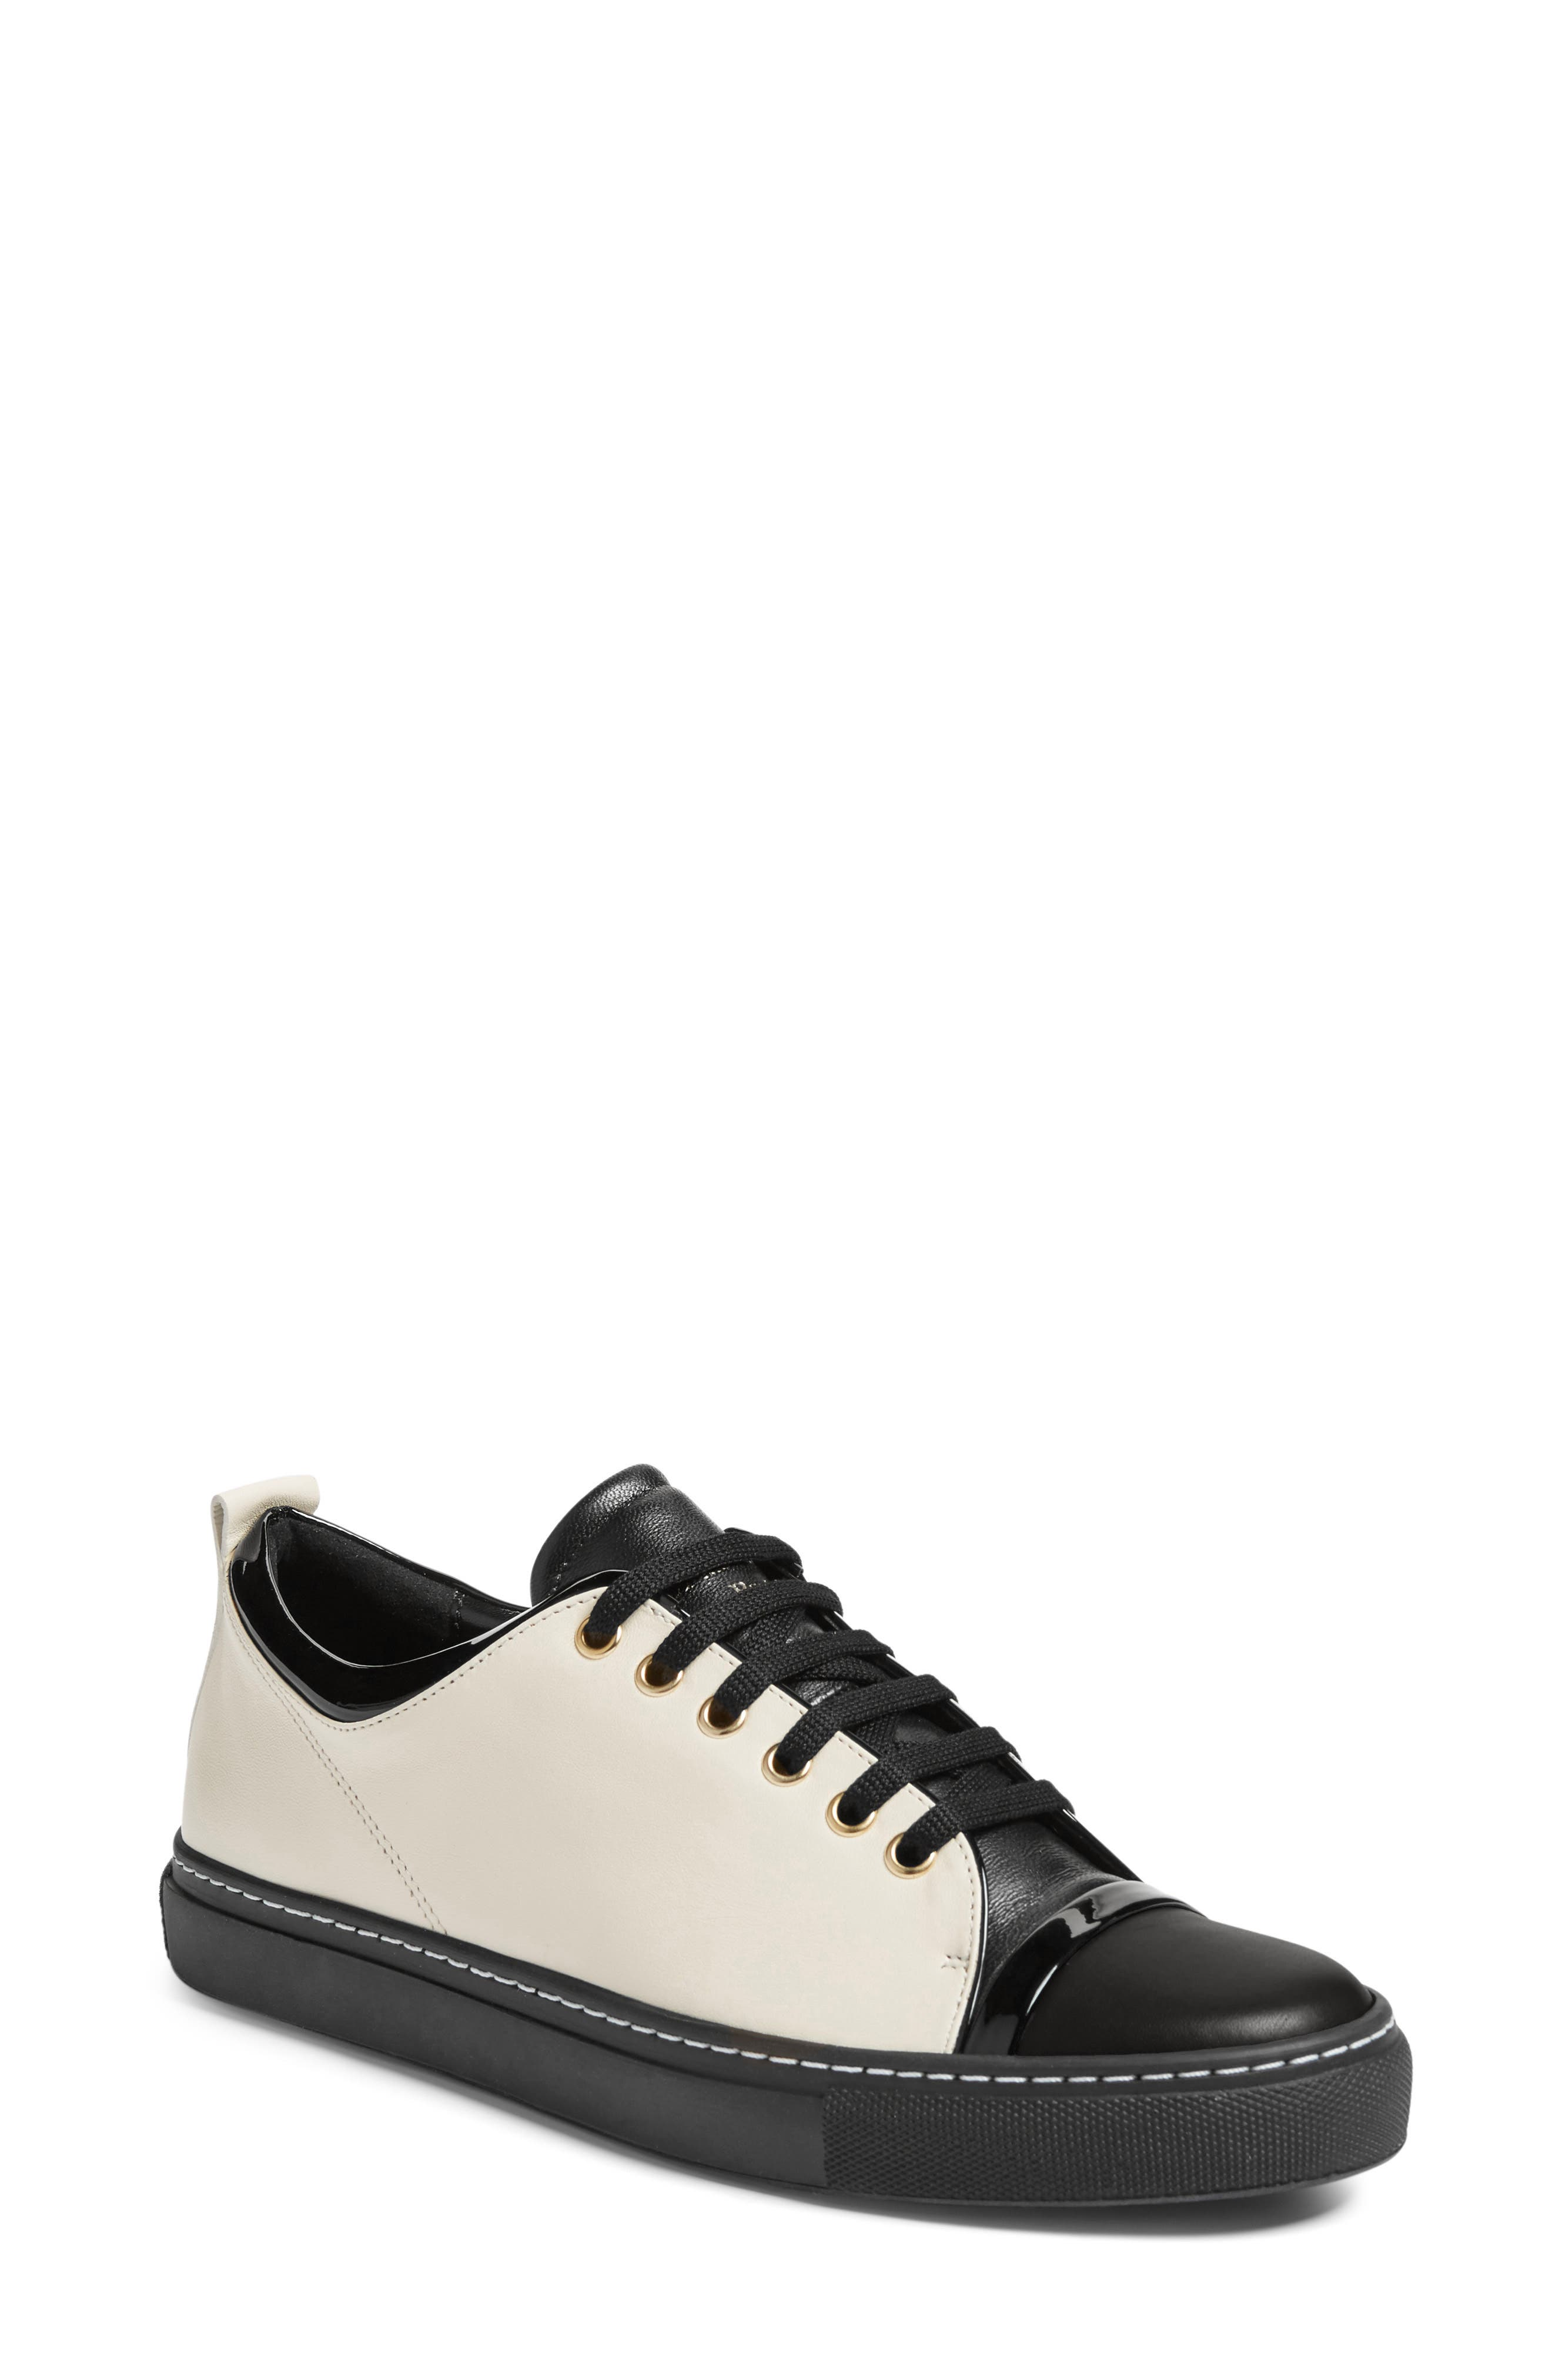 Lanvin Low Top Cap Toe Sneaker (Women)